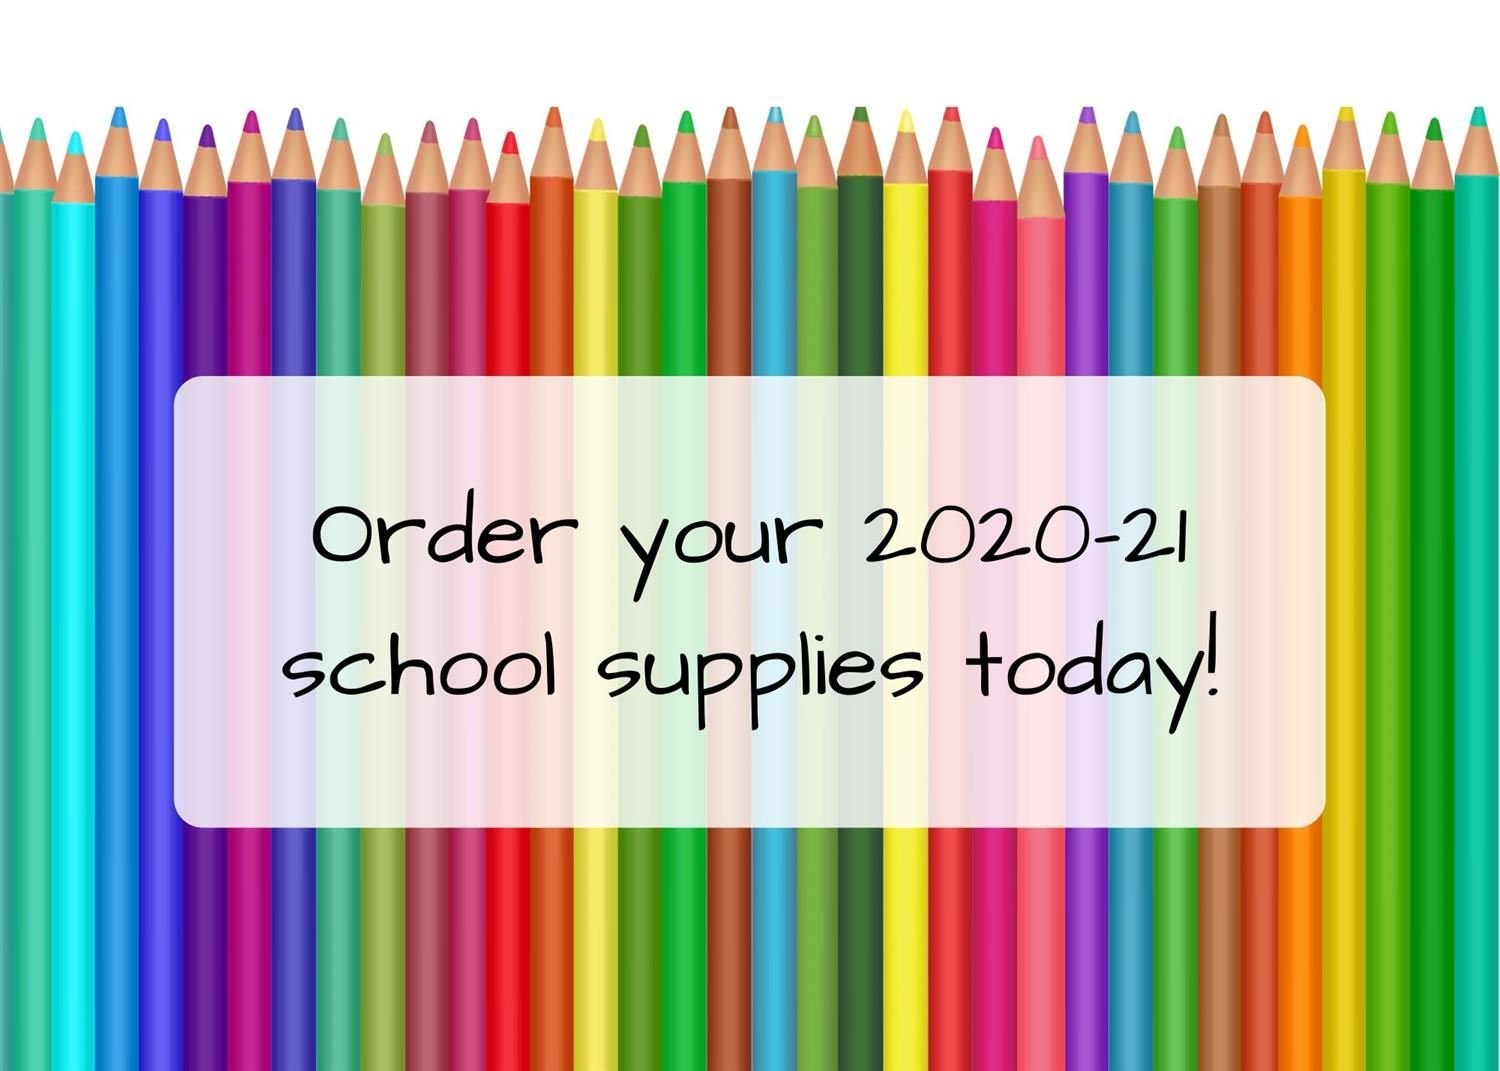 Order your supplies today!